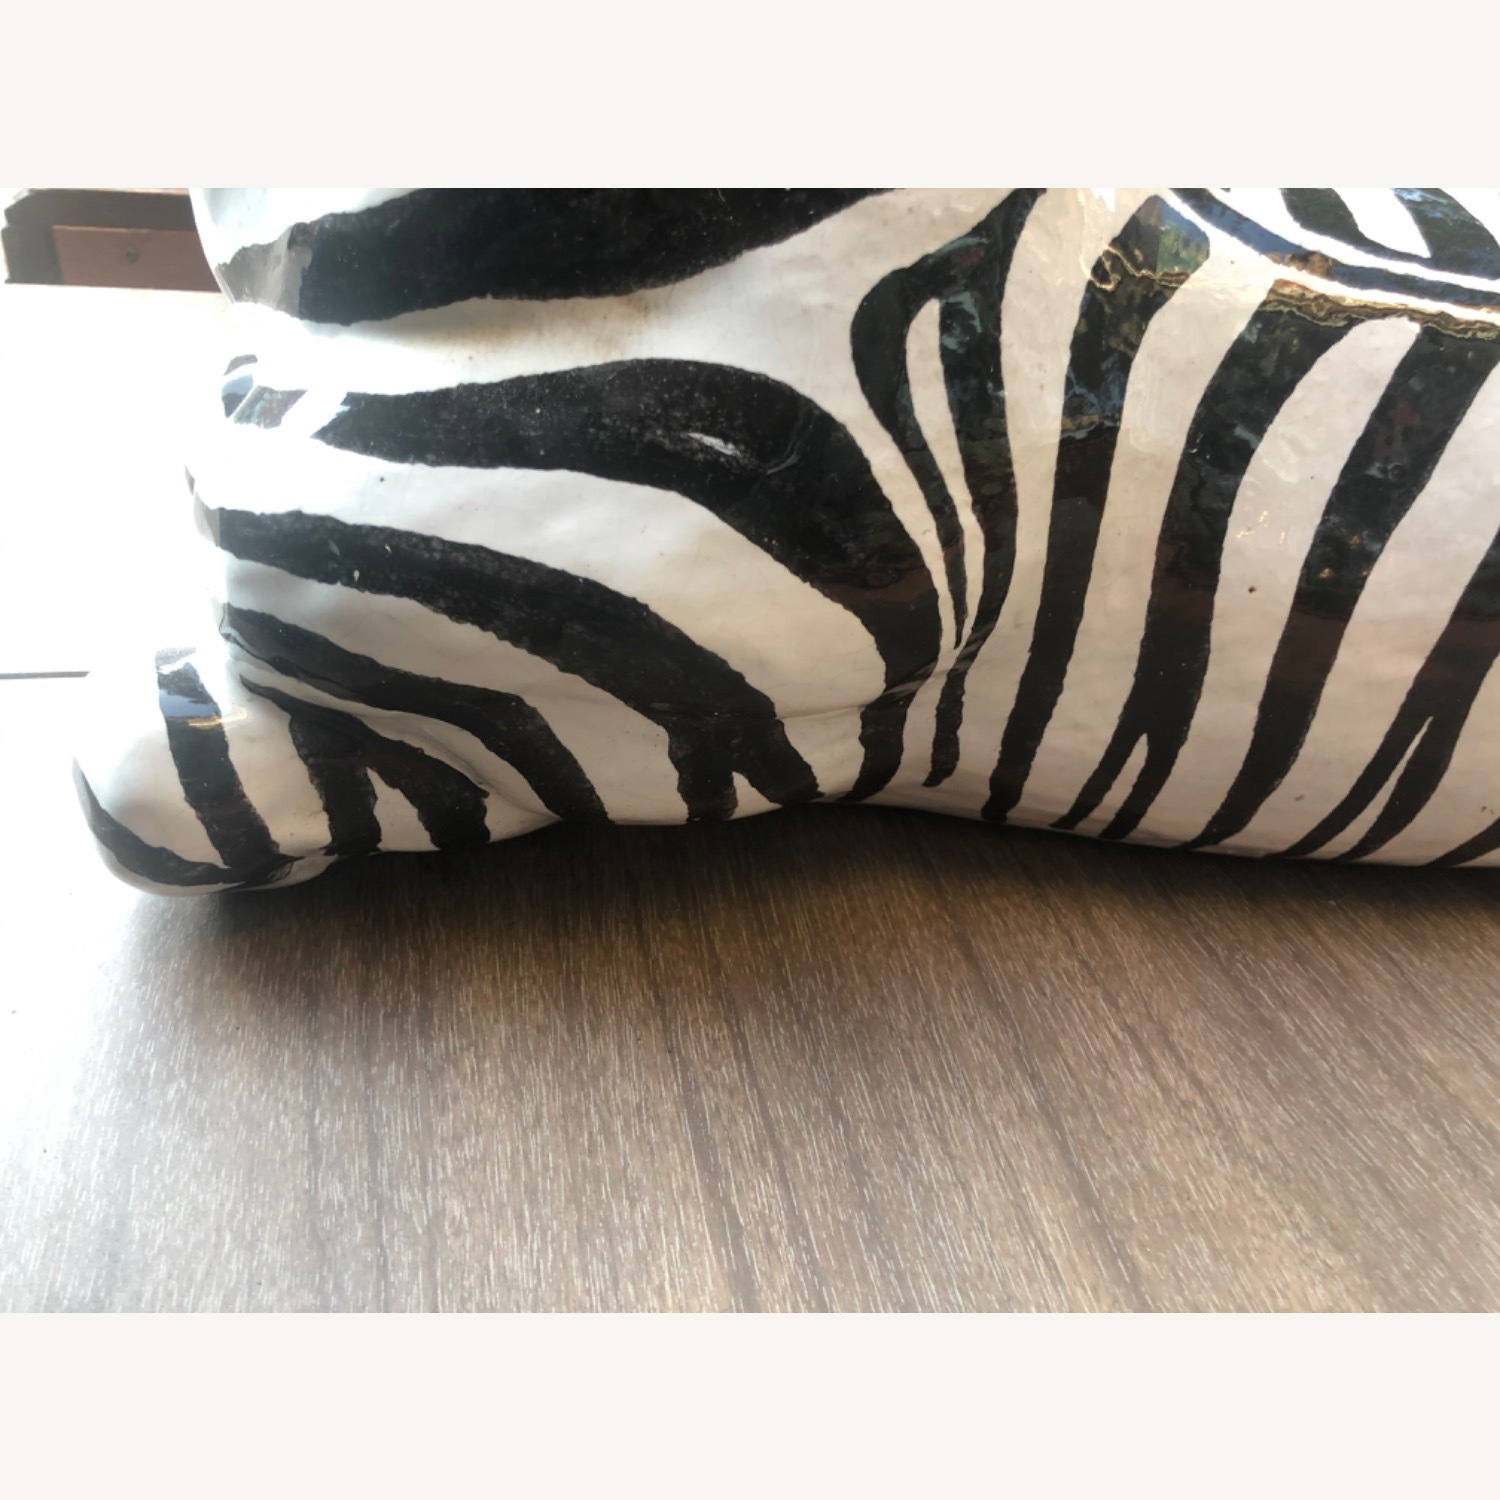 Vintage 1960s Ceramic Zebra Made in Italy - image-10